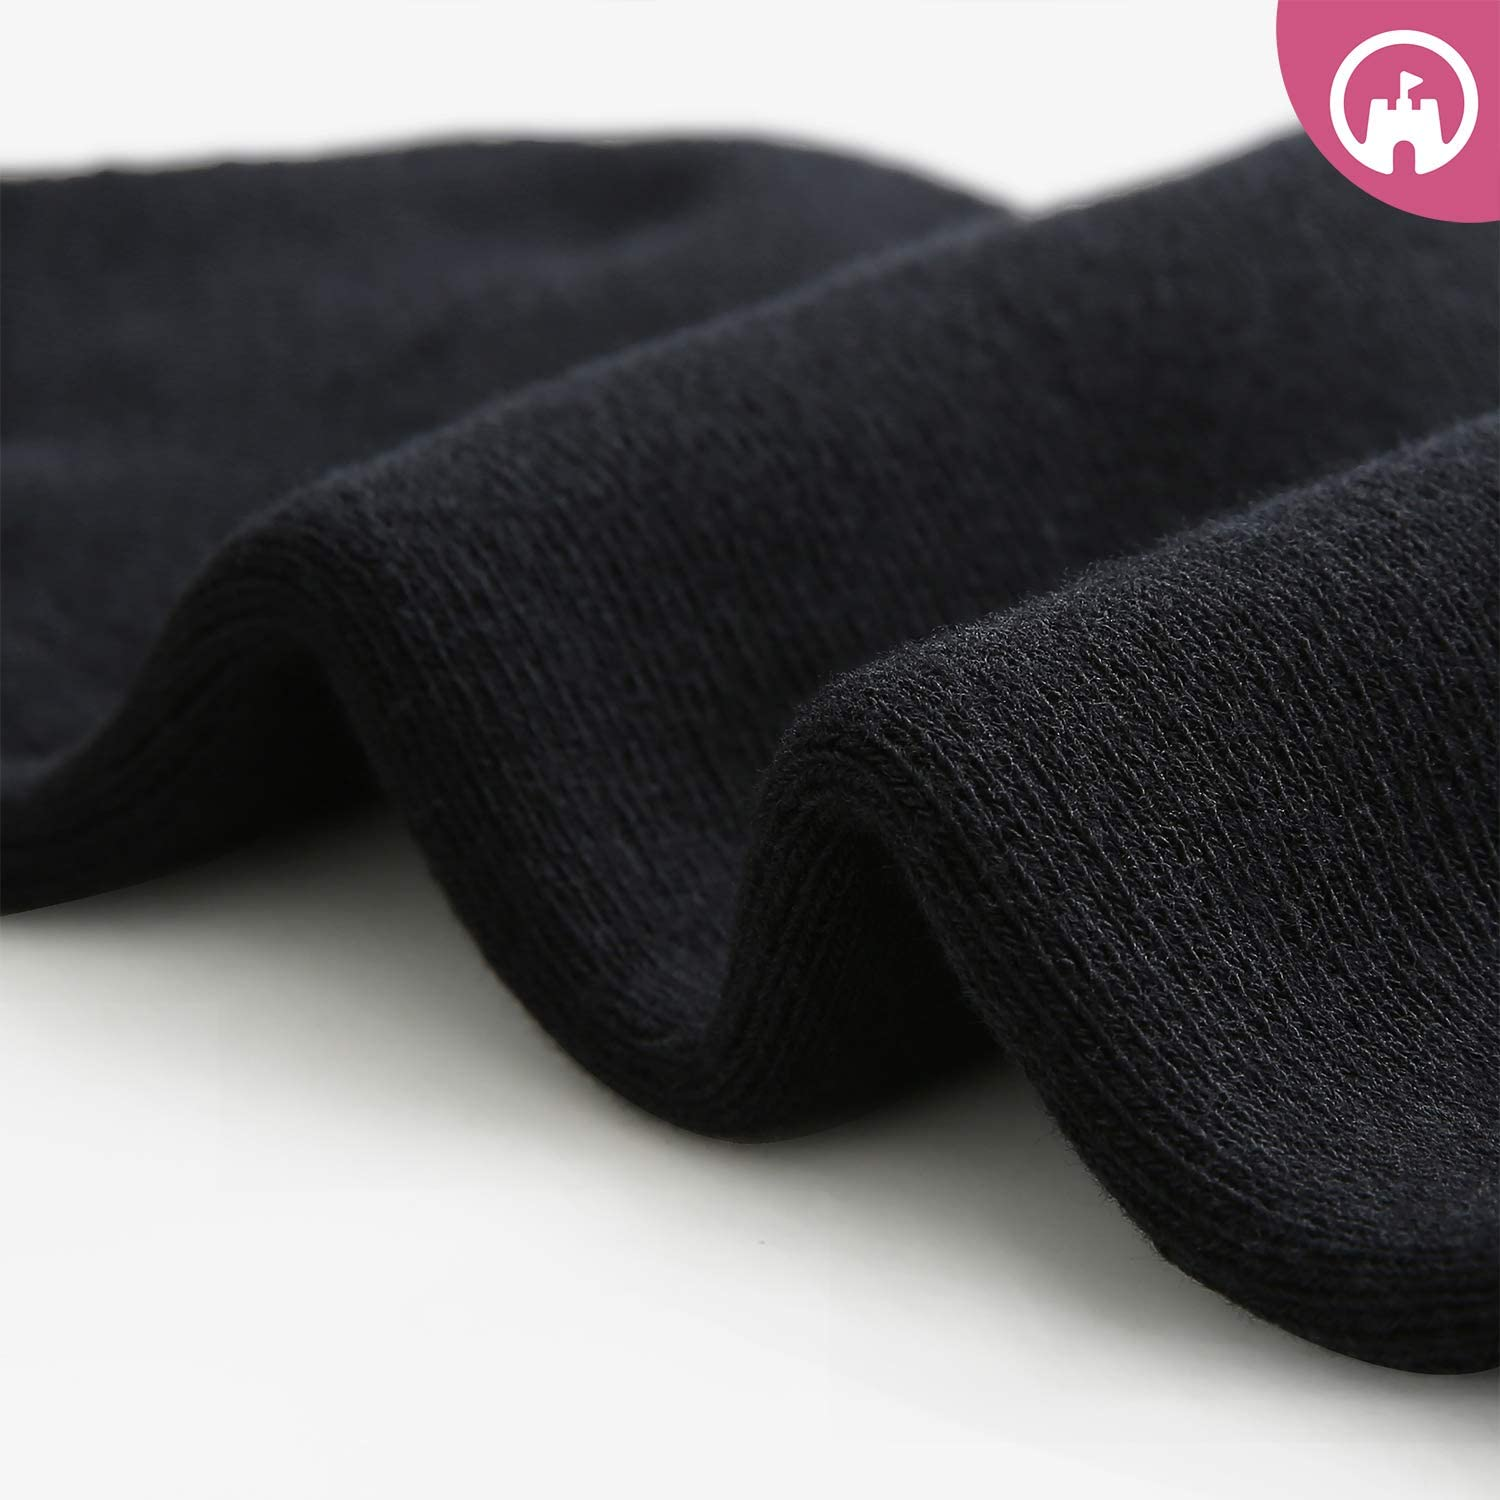 LIMPIDEE Womens Crew Socks 6 Pairs 7-10//10-13 Winter Mid Calf Moisture Wicking Casual Cotton Socks